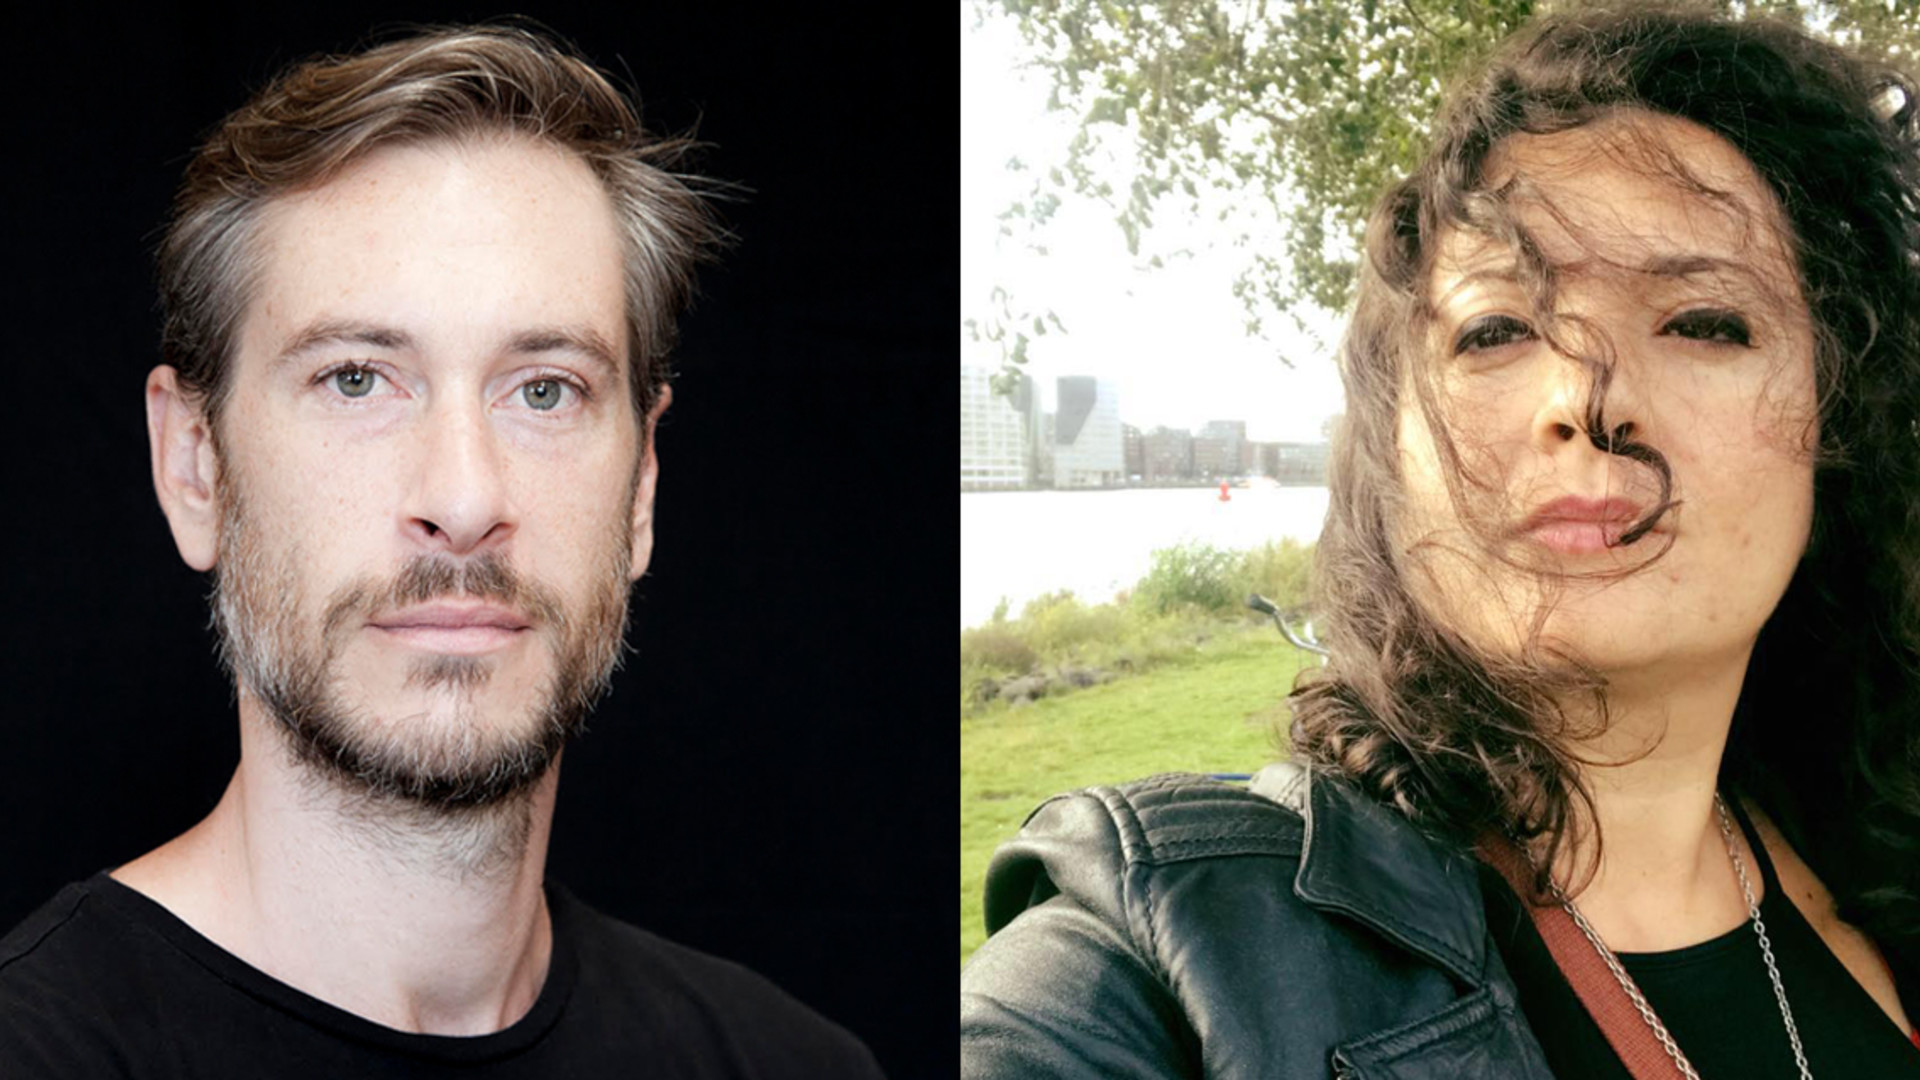 Two headshots showing 2 people from the shoulders up. On the left is a man with a beard and short hair, on the right a woman with mid-length brunette hair and a leather jacket.